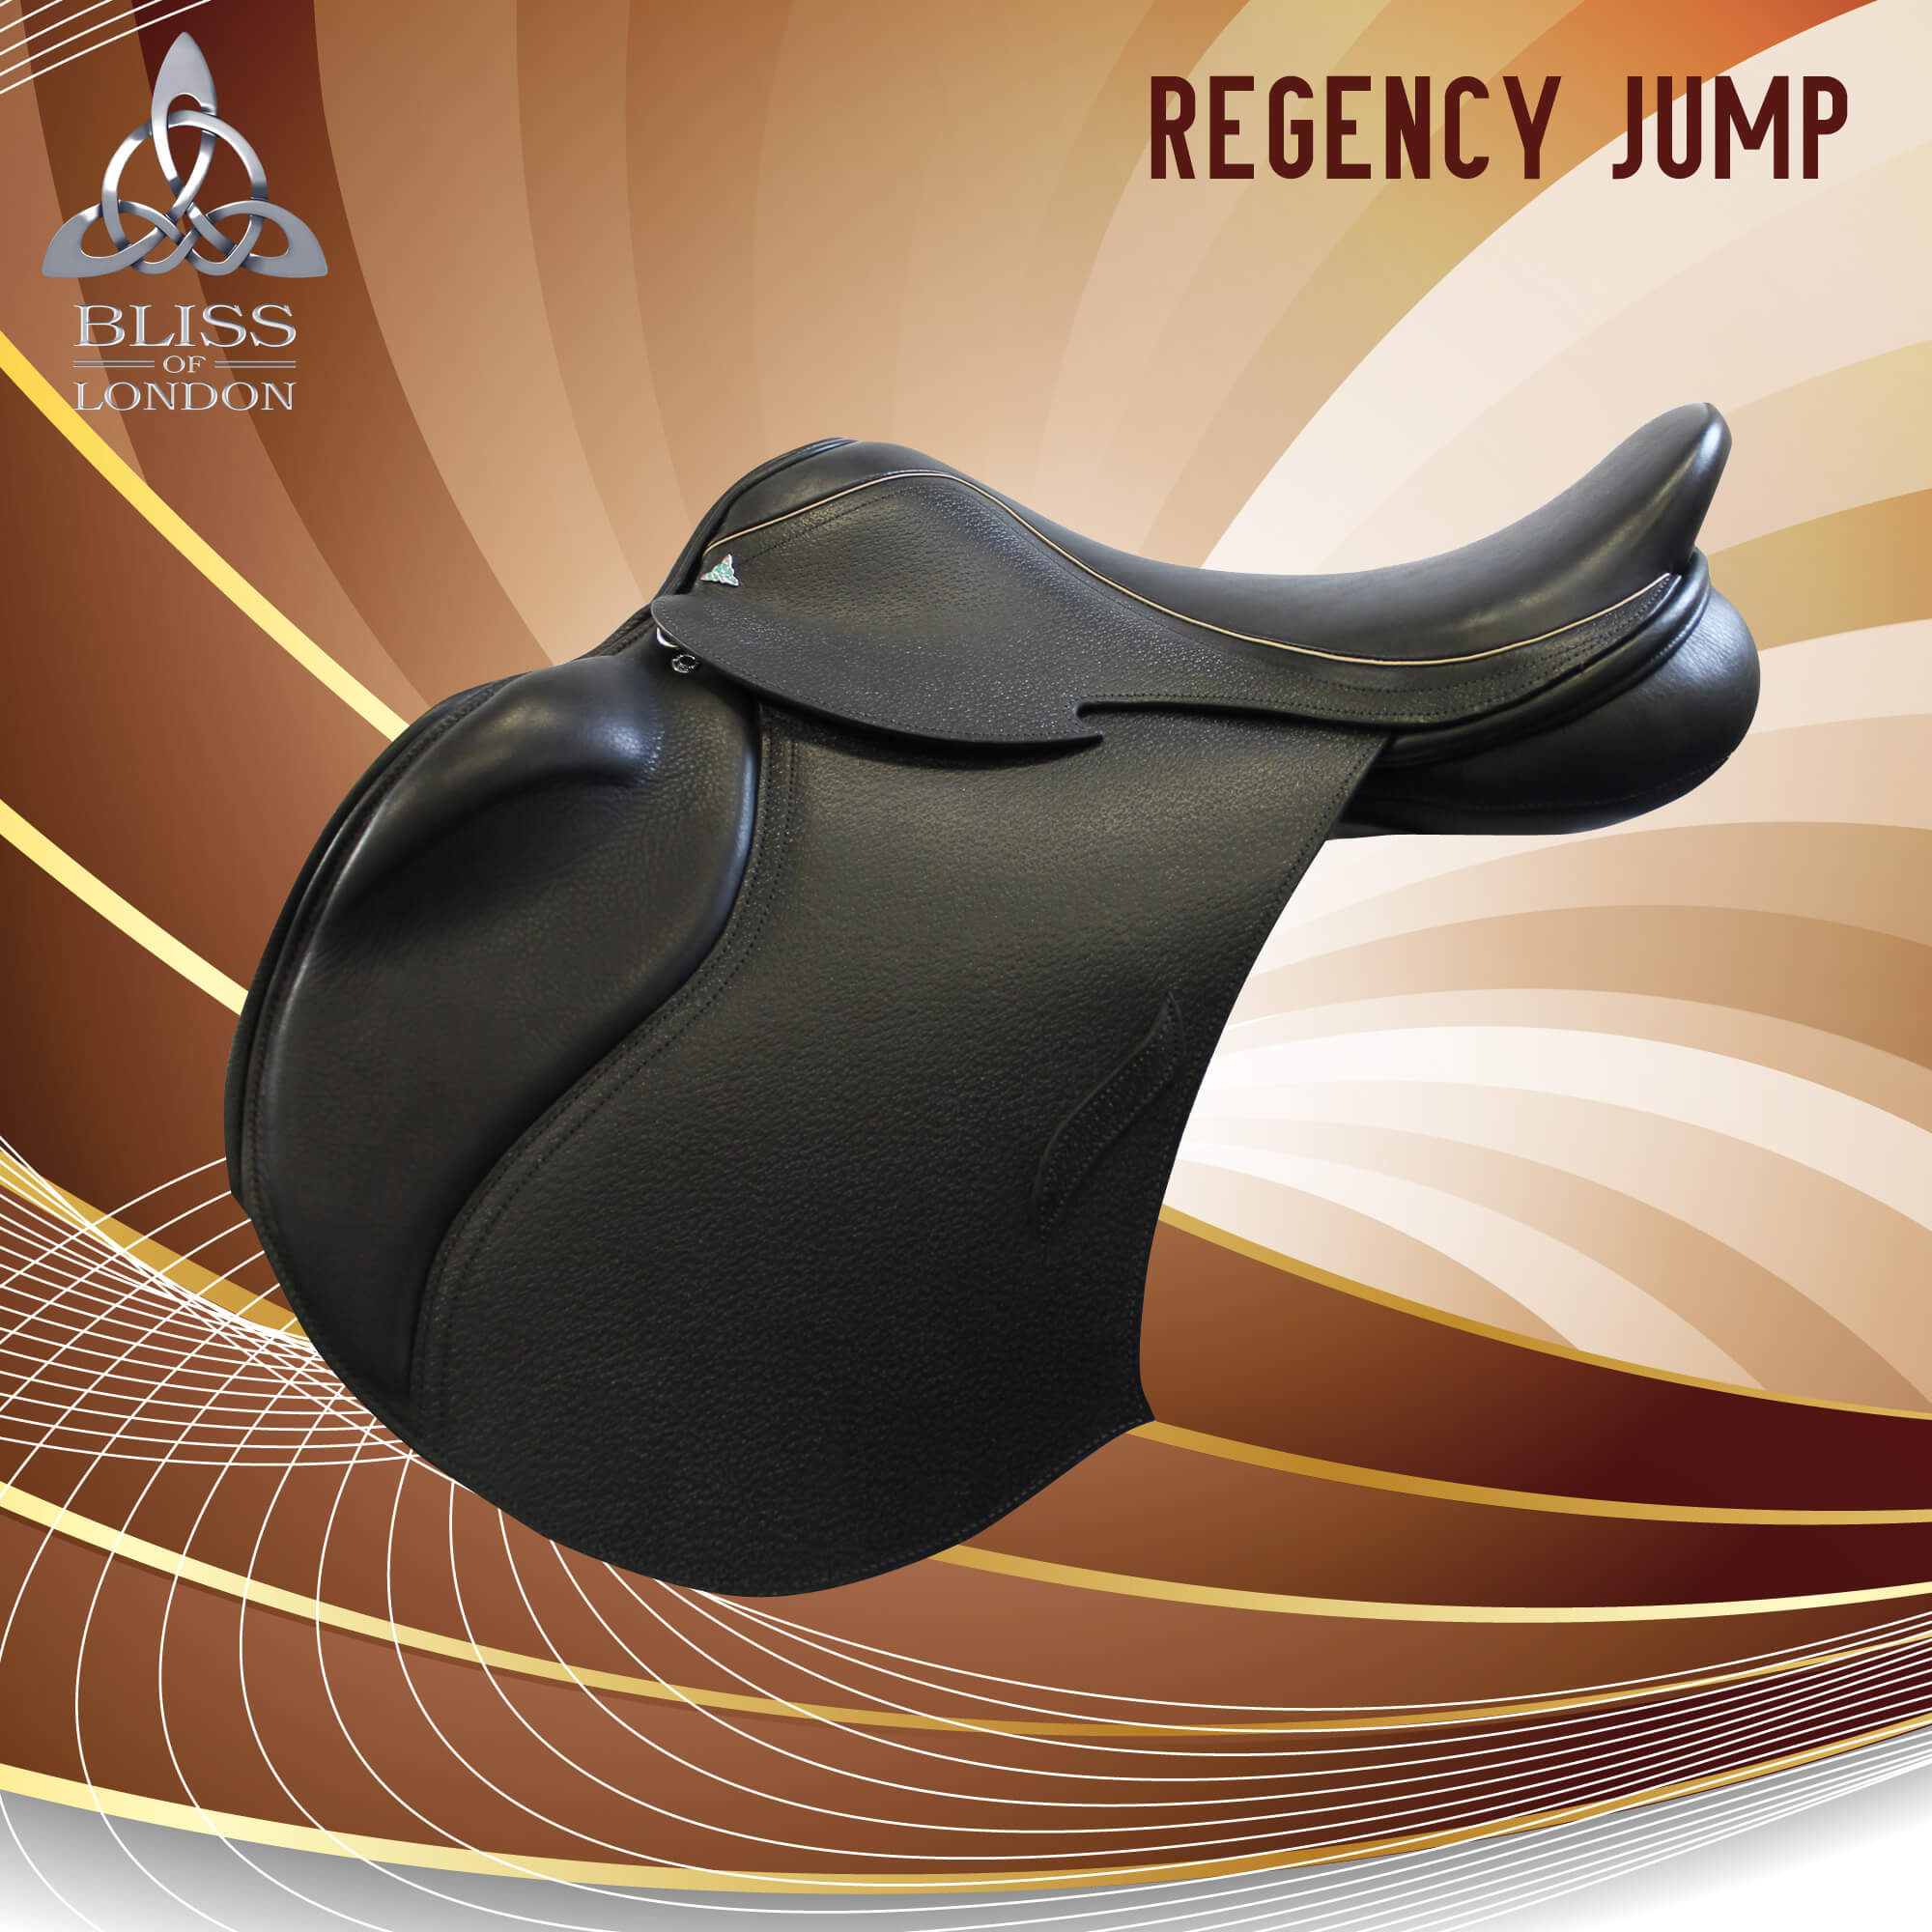 5 Bliss REGENCY JUMP